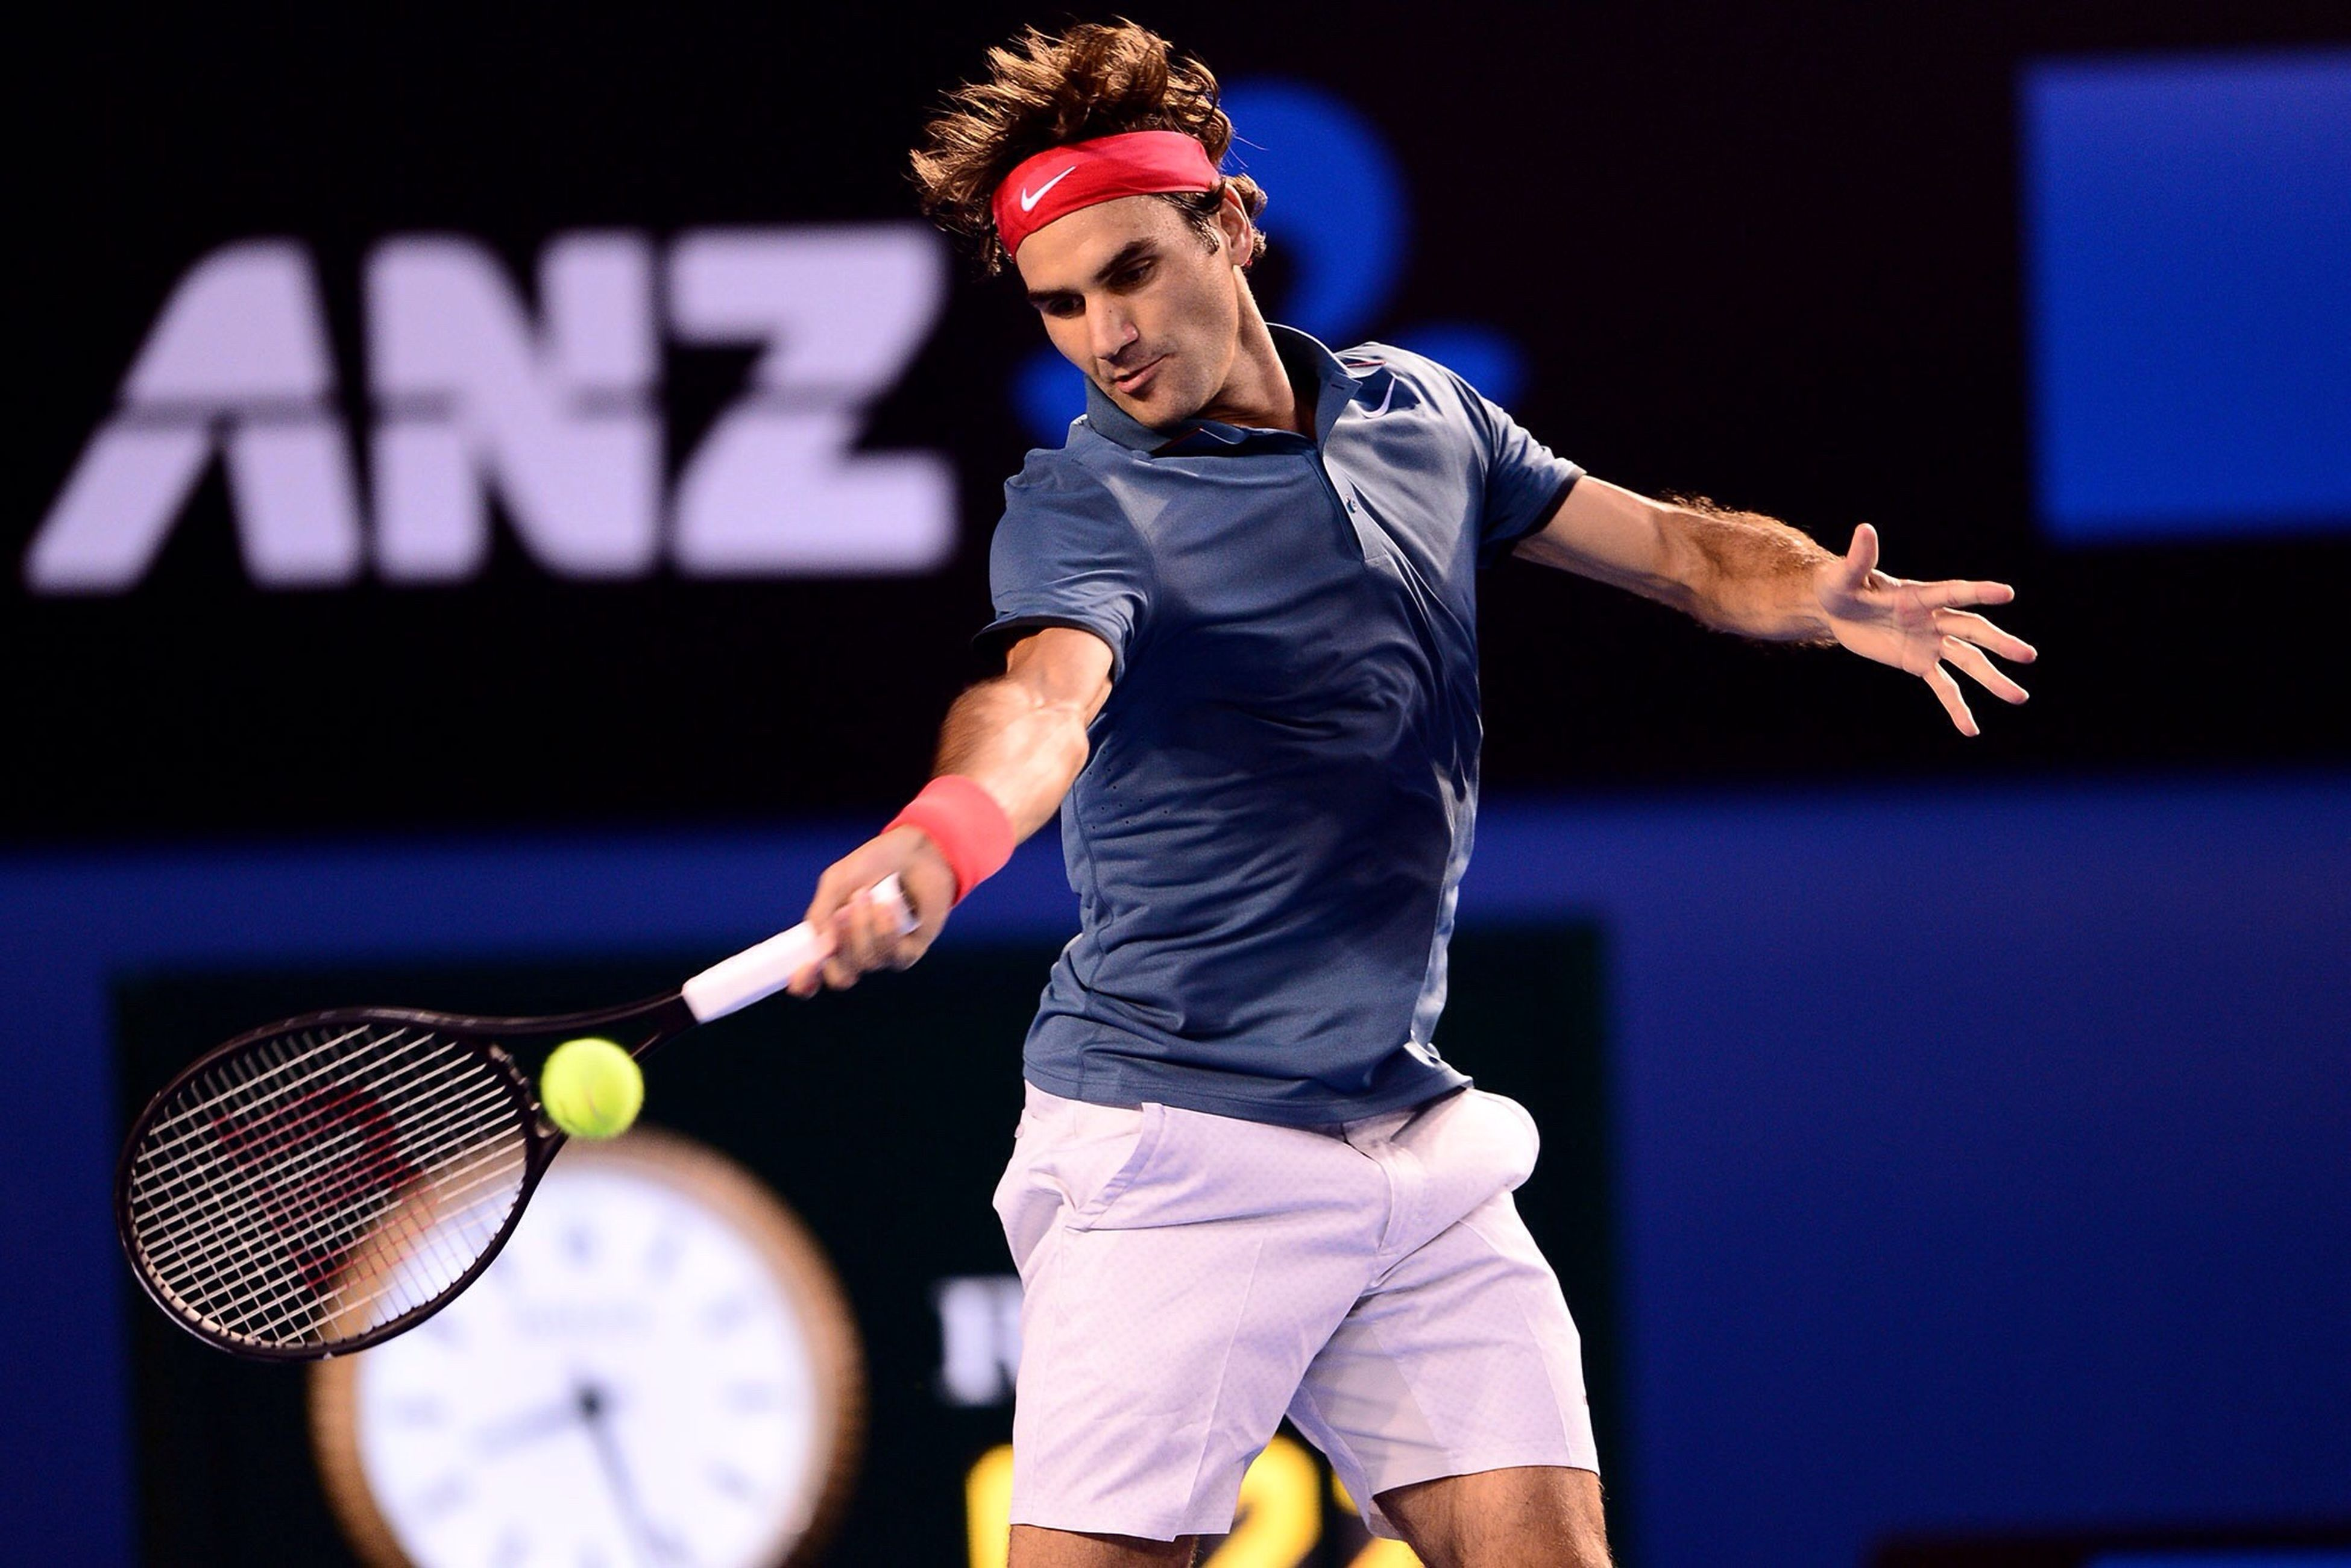 The King reaches 1000 victories?? Over All The Others Simply RF Roger Federer The King Tennis